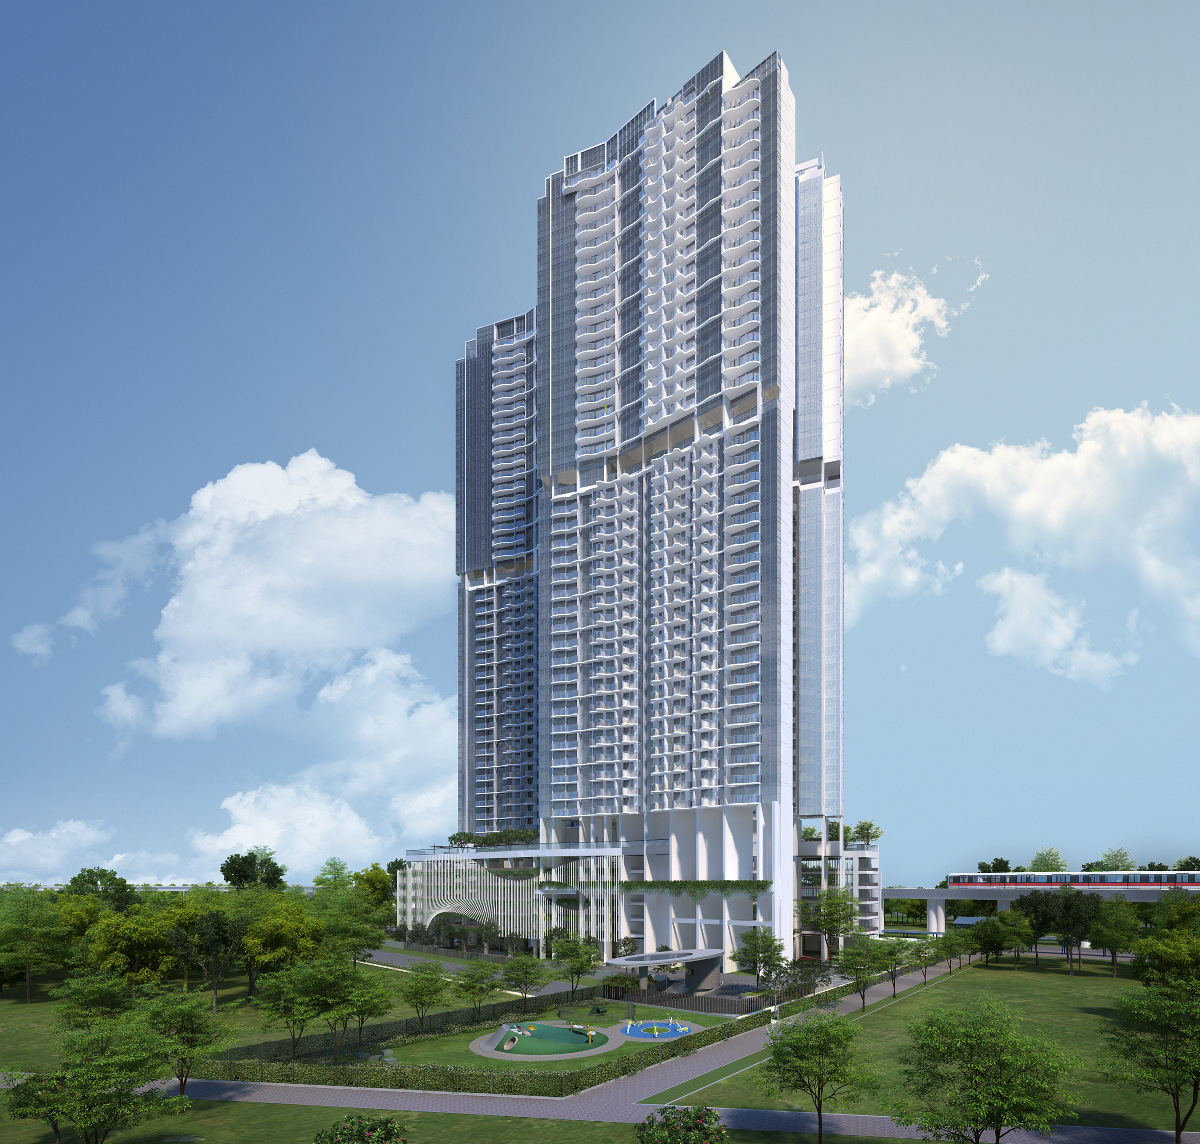 Queens Peak by Hao Yuan . Developer for the One Bernam Condo